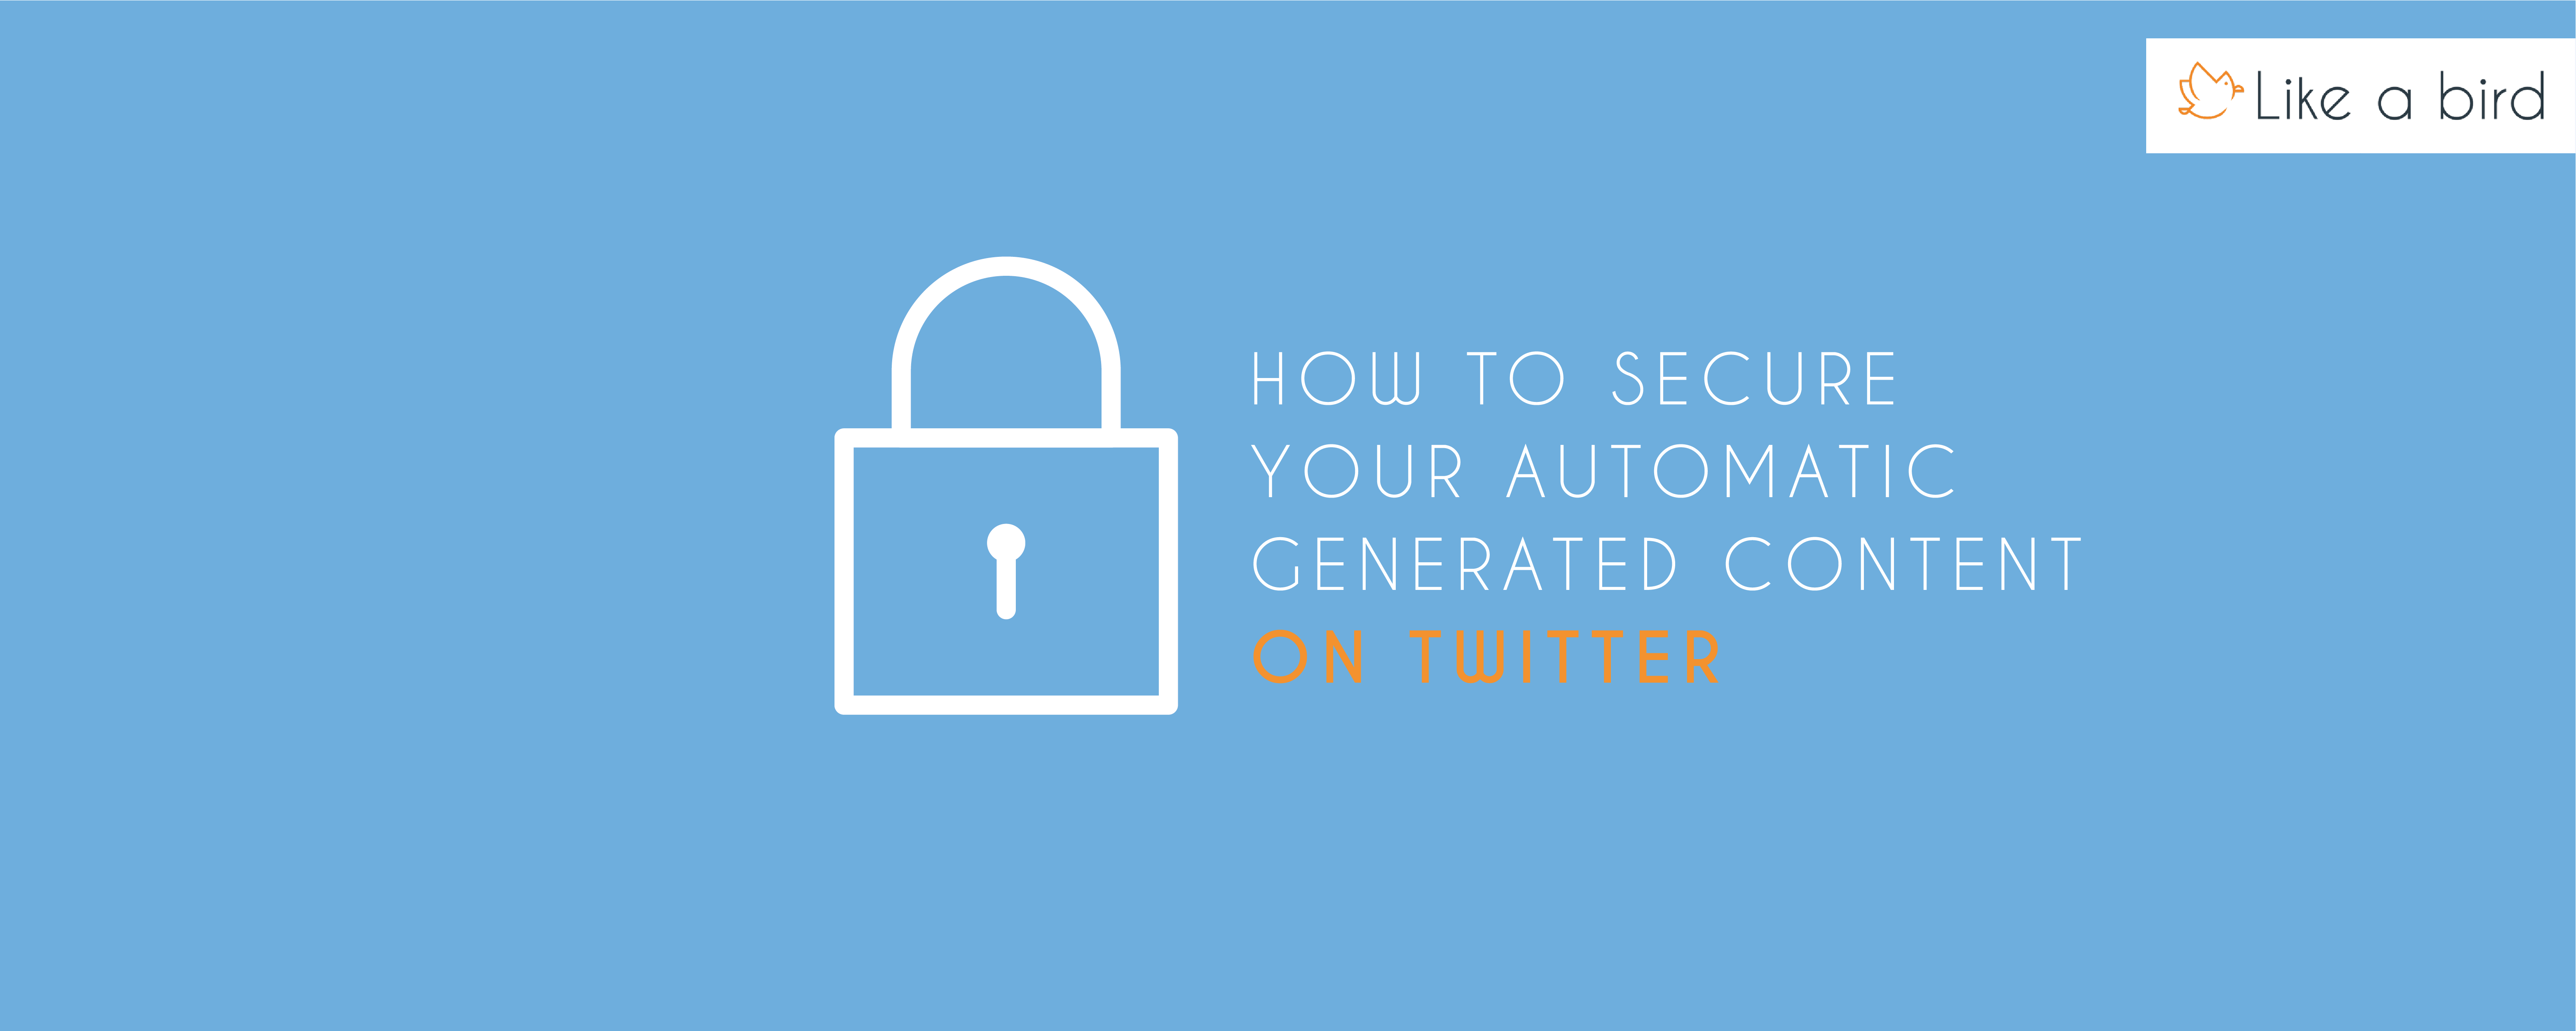 How to secure your automatic generated content on twitter ?